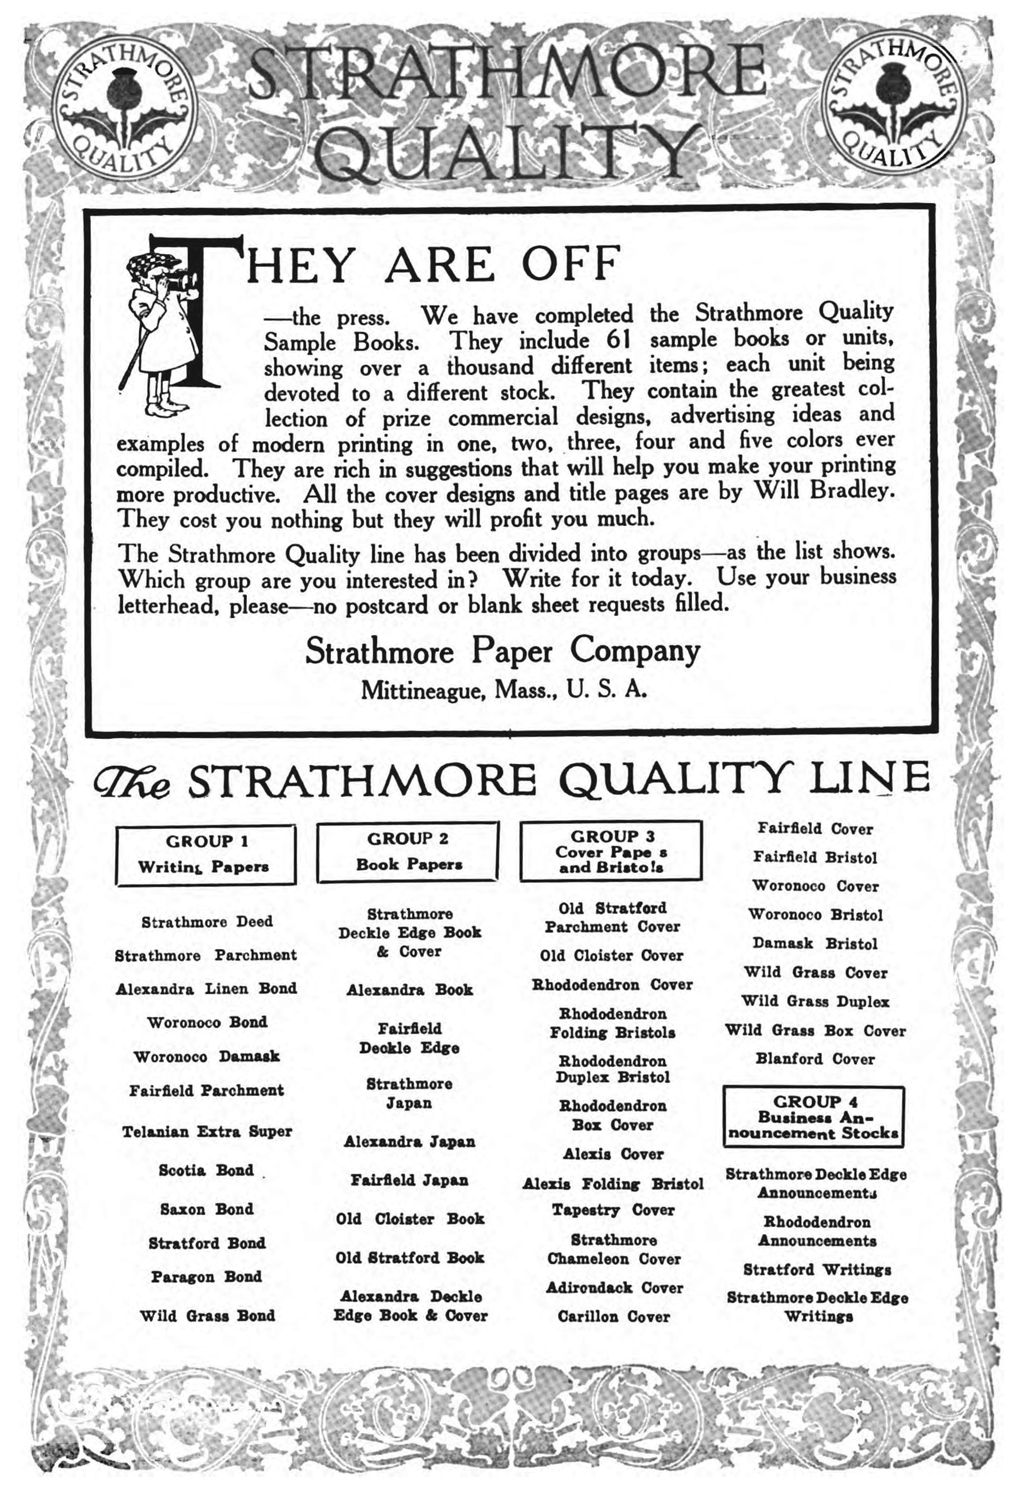 Strathmore Quality advertisement excerpted from Advertising & Selling (November 1912), p. 93.